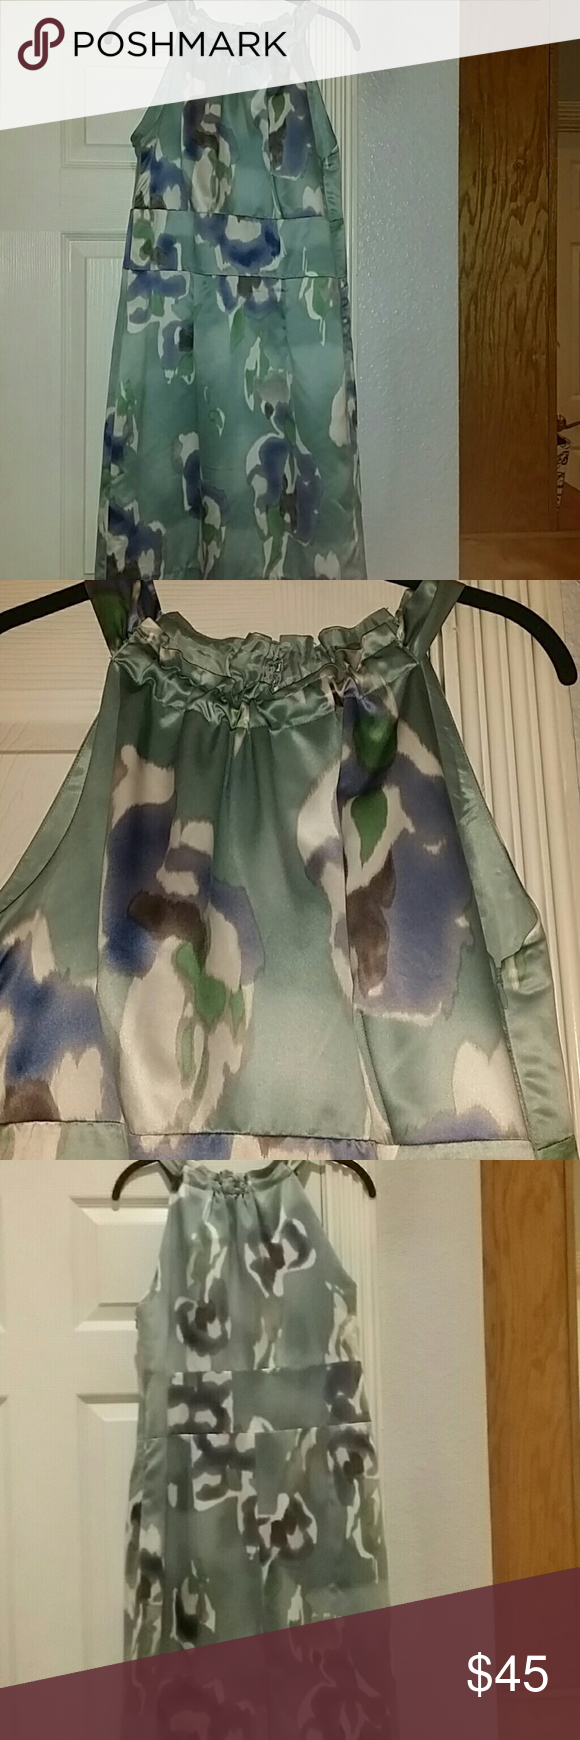 New - Ann Taylor Watercolor Midi Dress Sweet watercolor fabric that is stretchy. Well constructed dress. Like new. Size 14 Ann Taylor Dresses Midi